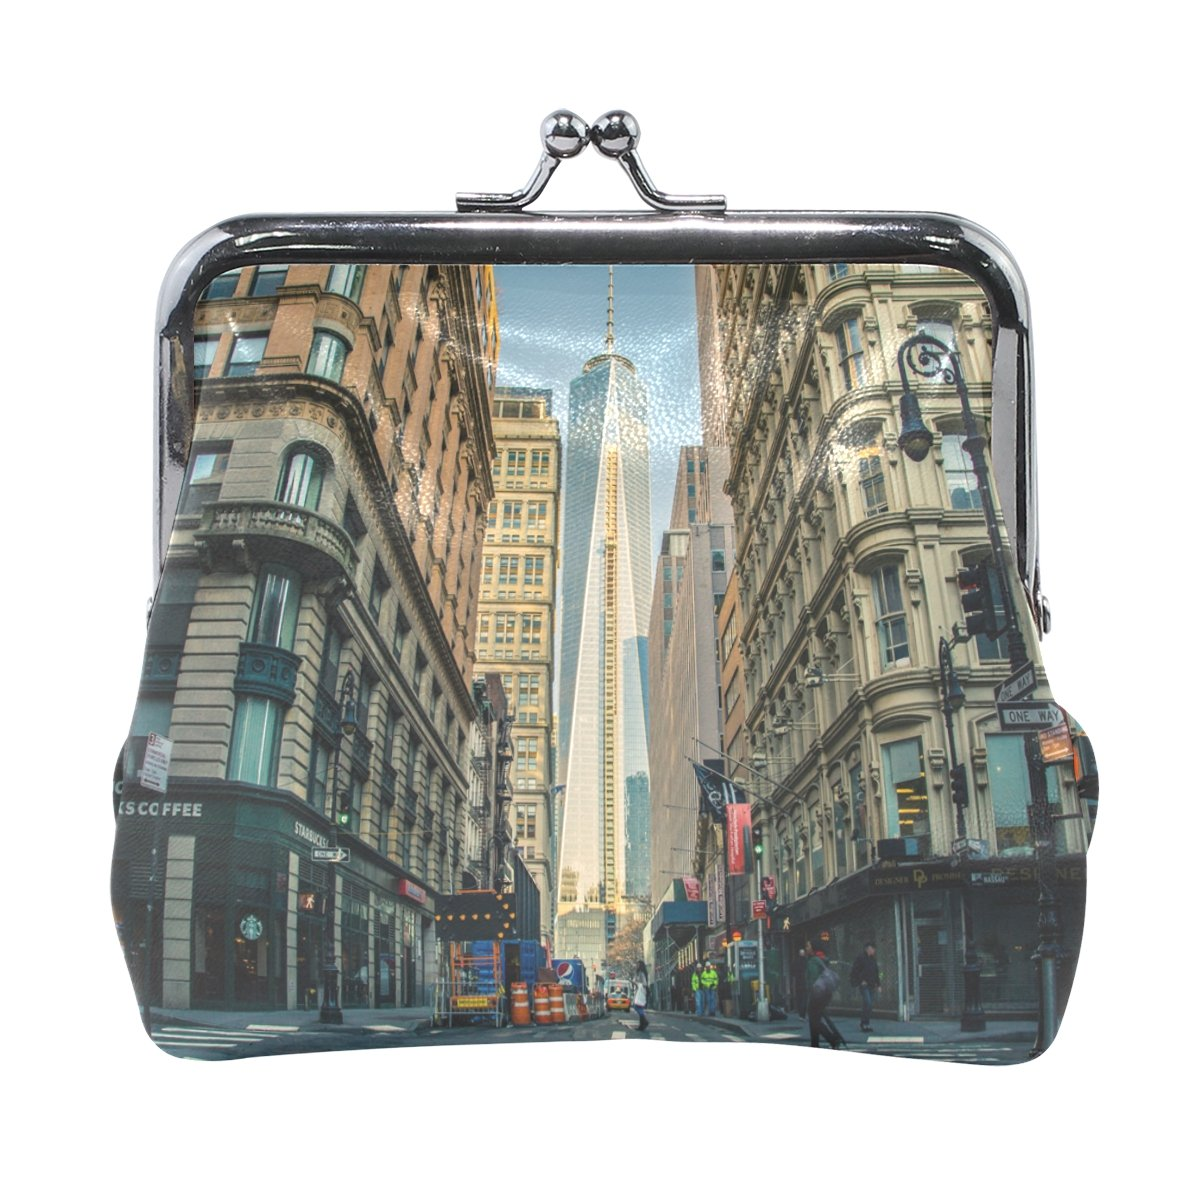 Leather Coin Purse Clutch Pouch Handbag with World Trade Center In Manhattan Wallet/for Women Girls Students